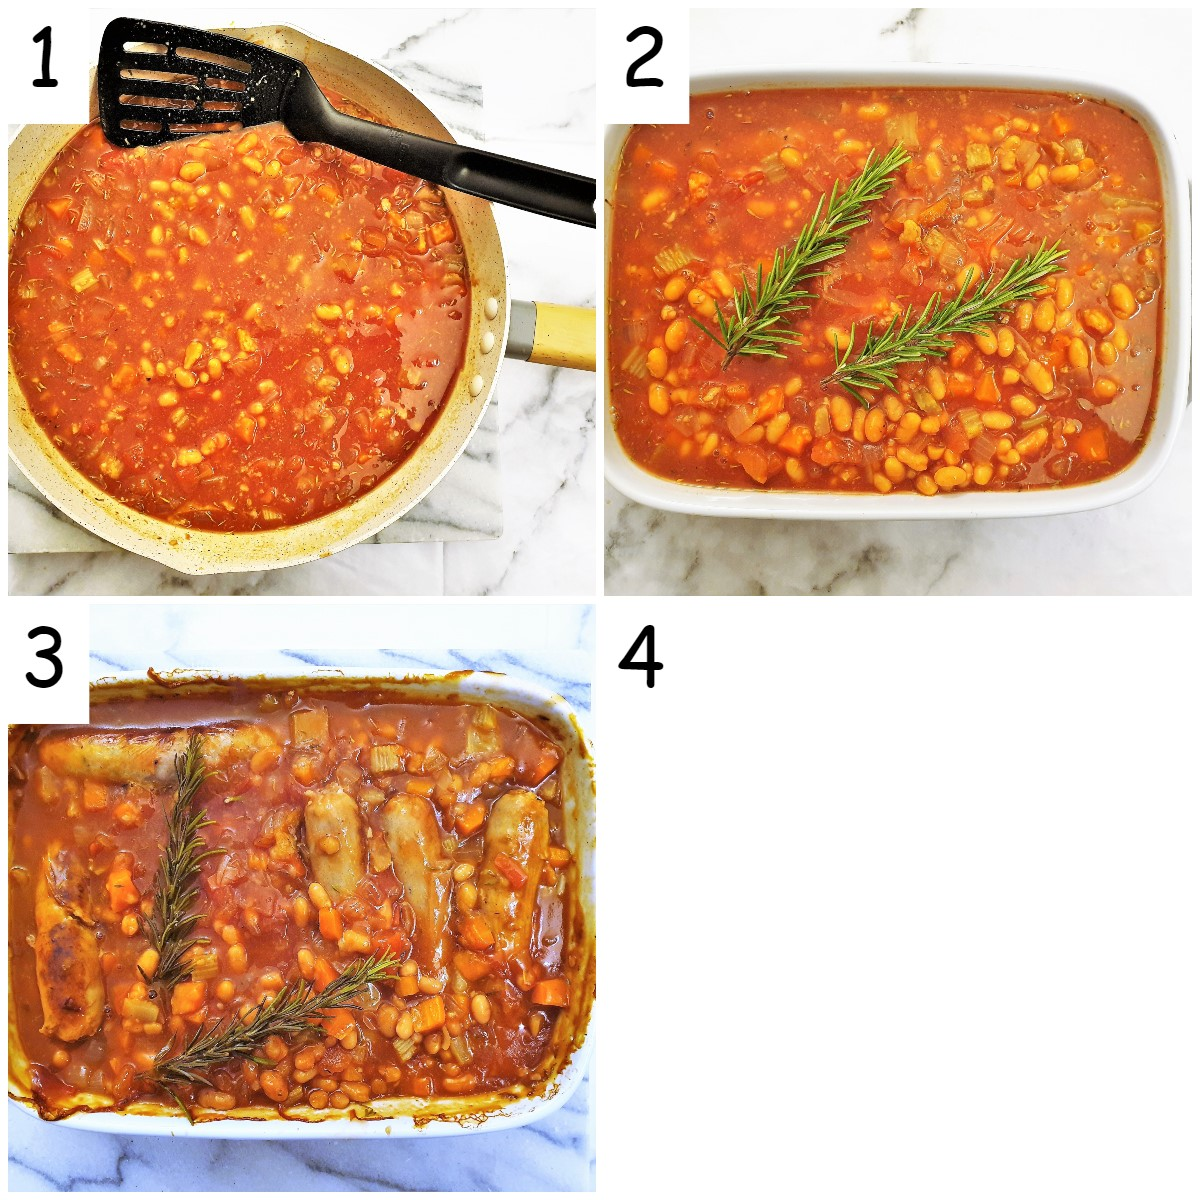 Steps for assembling a sausage and bean casserole.